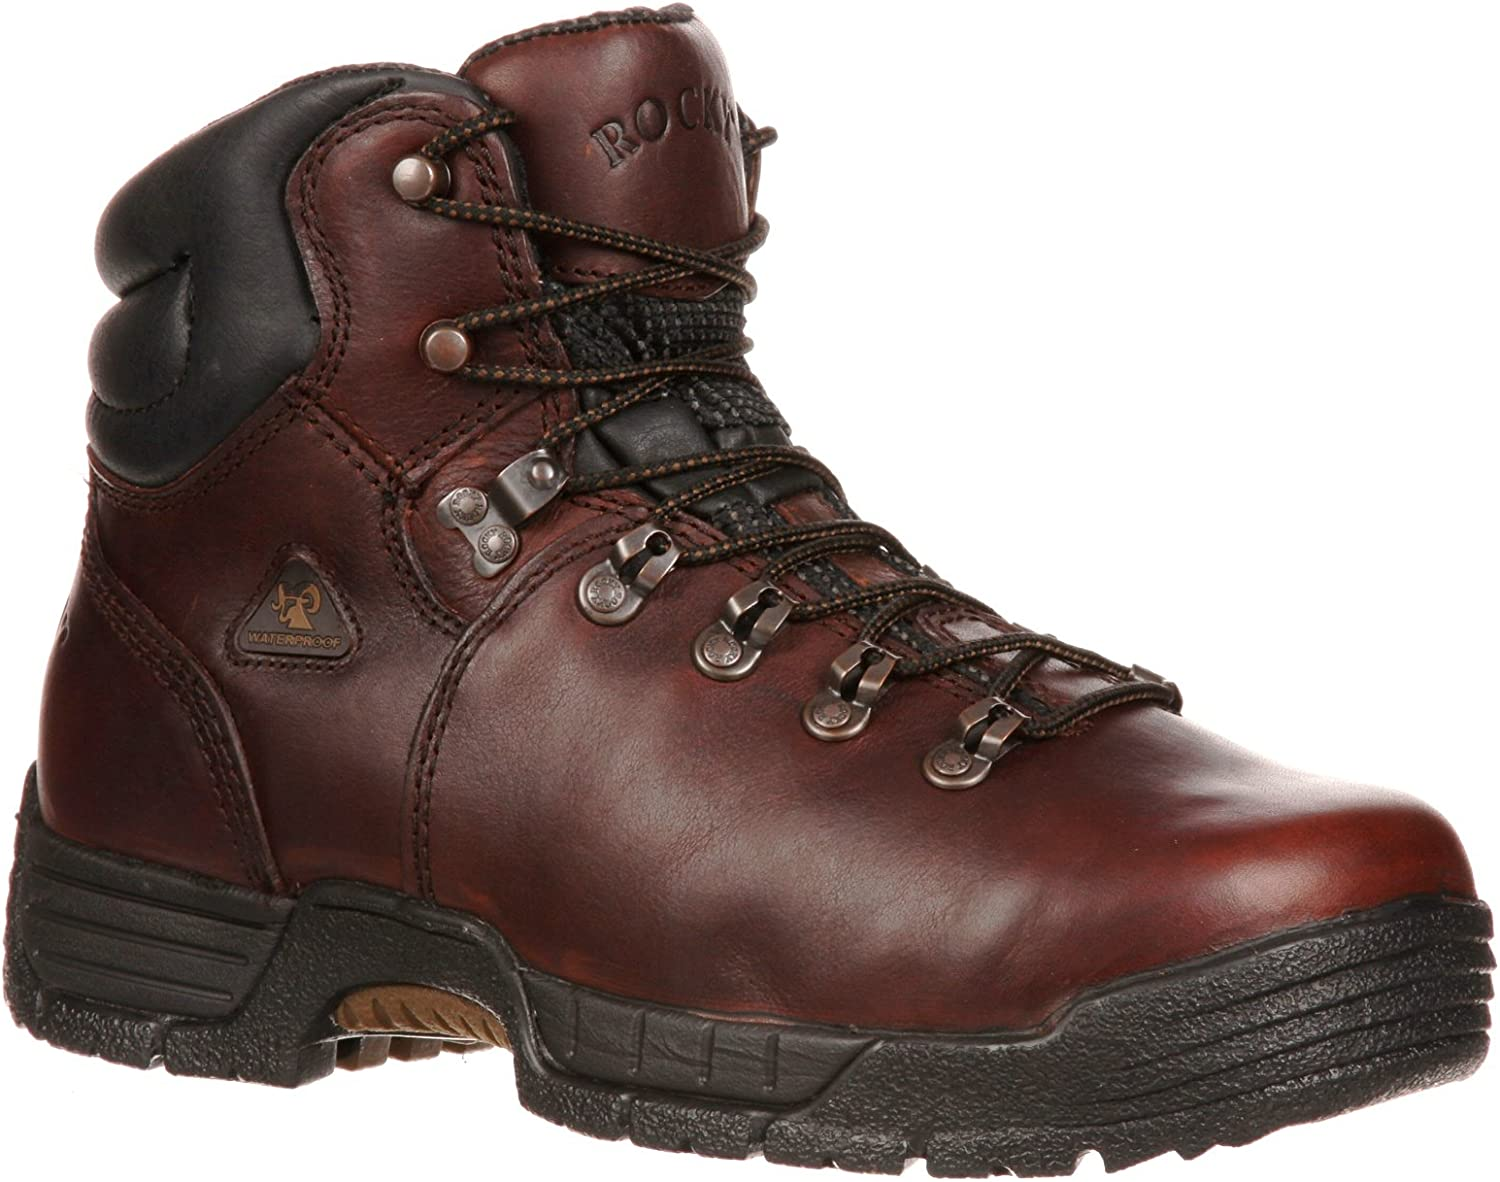 Rocky Men's Mobilite Steel Toe Waterproof Work Boots-6114